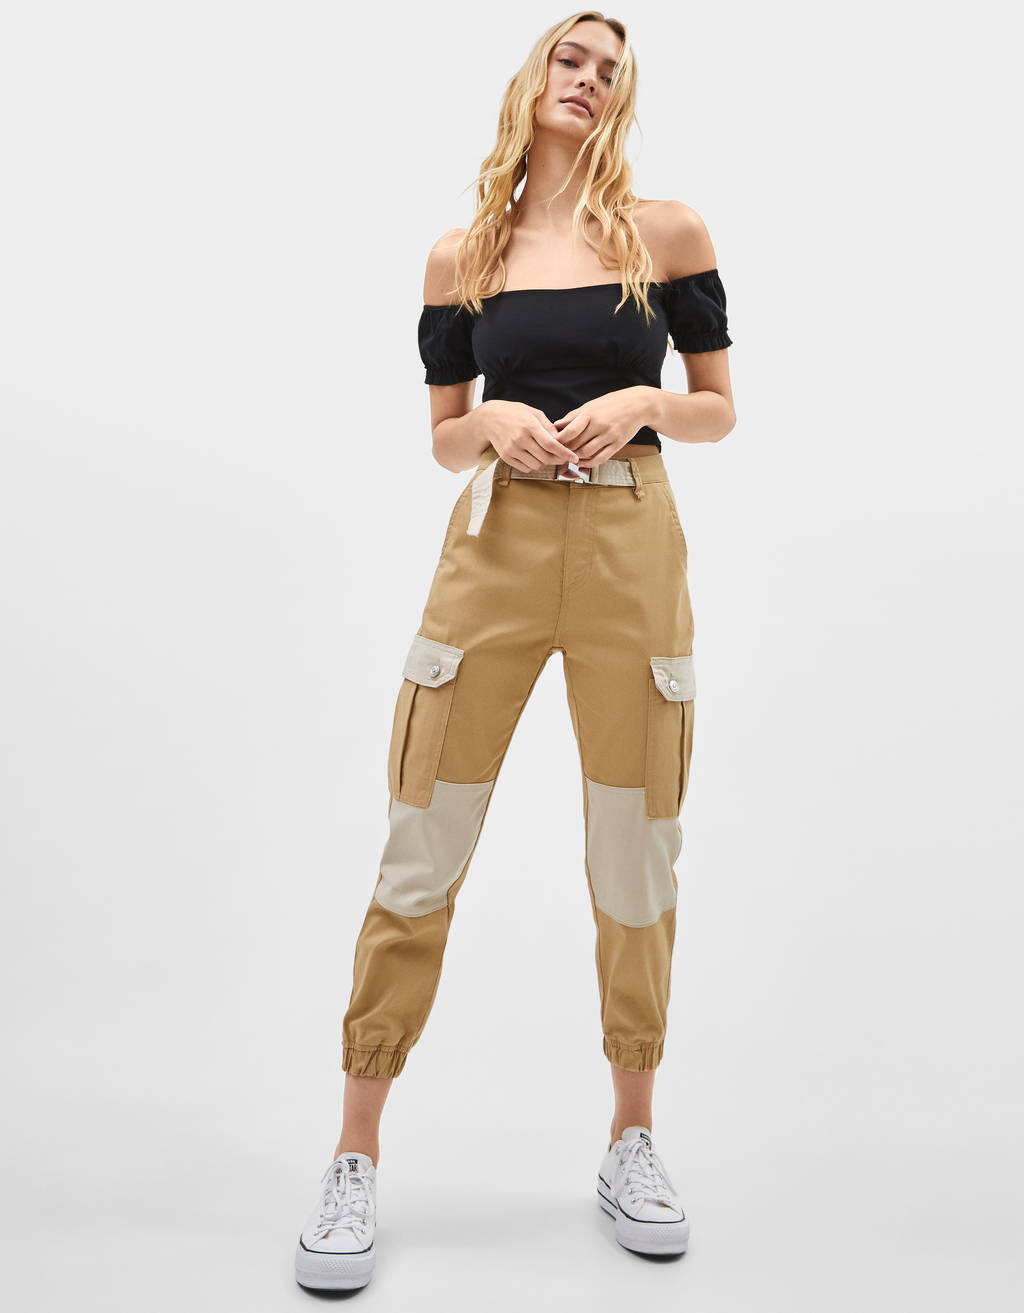 be2211a9cdd Women's Tops - Spring Summer 2019 | Bershka